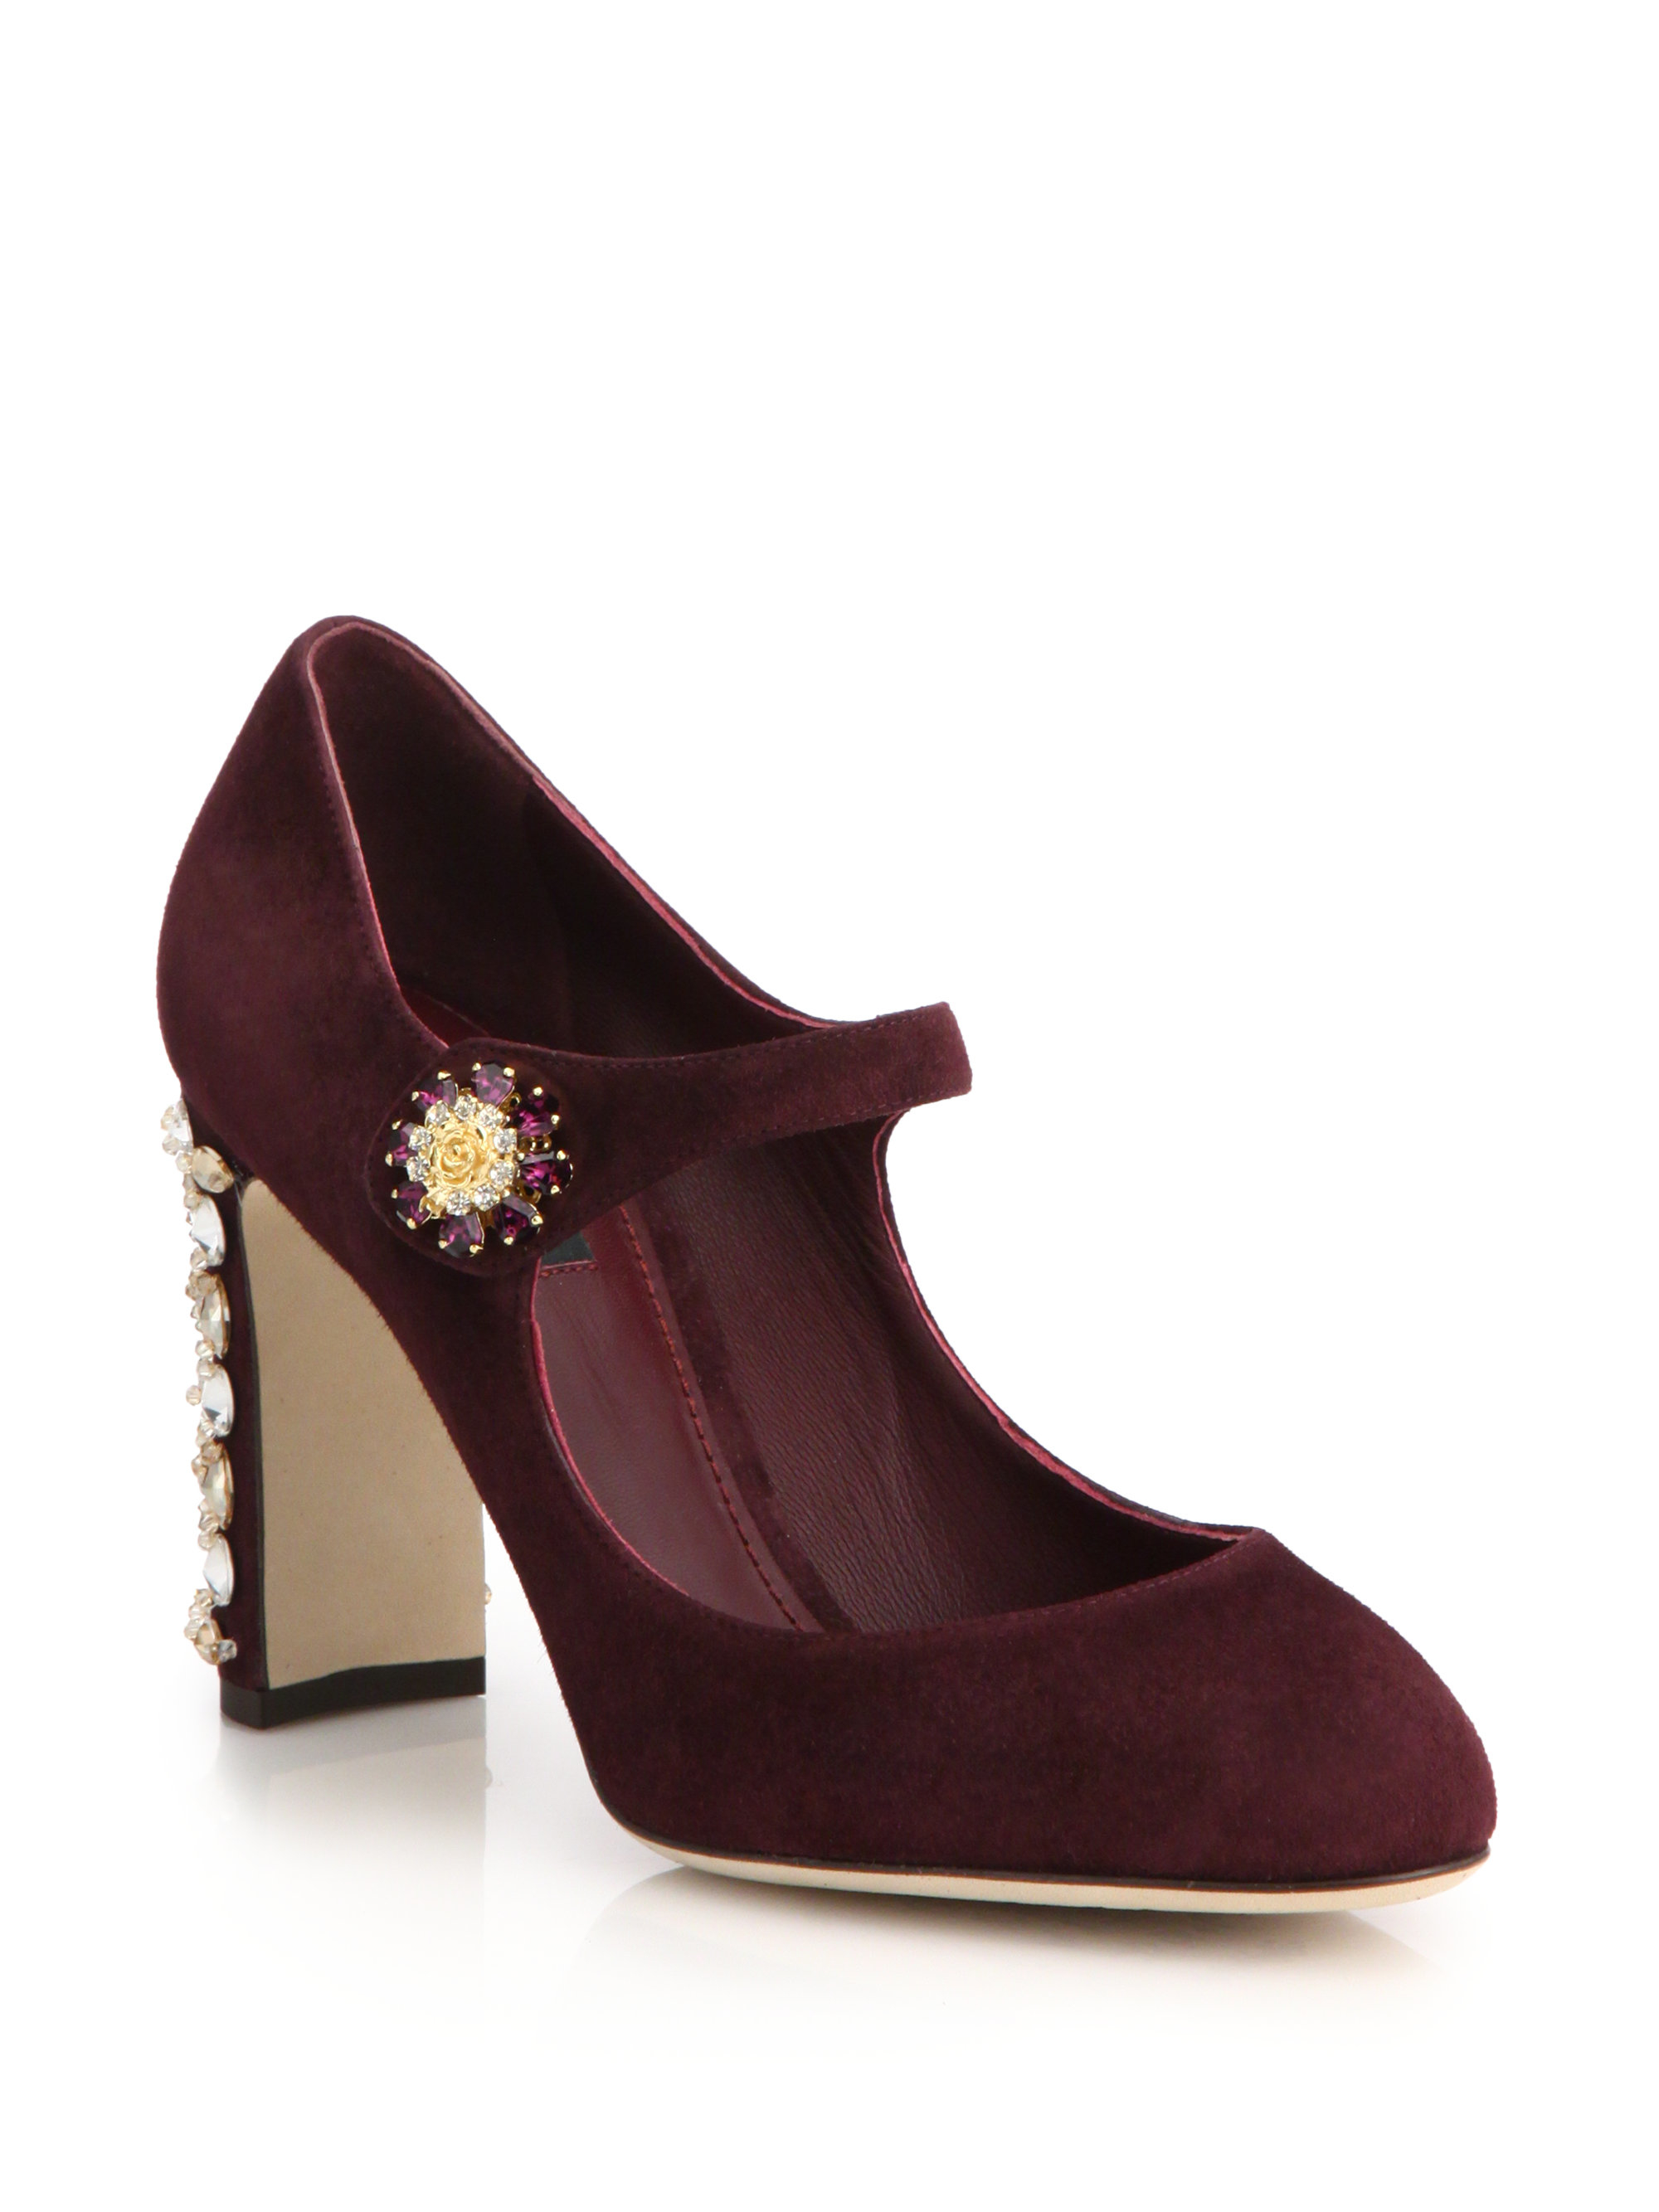 dolce-gabbana-dark-red-suede-mary-jane-embellished-heel-pumps-red-product-0-253662492-normal.jpeg